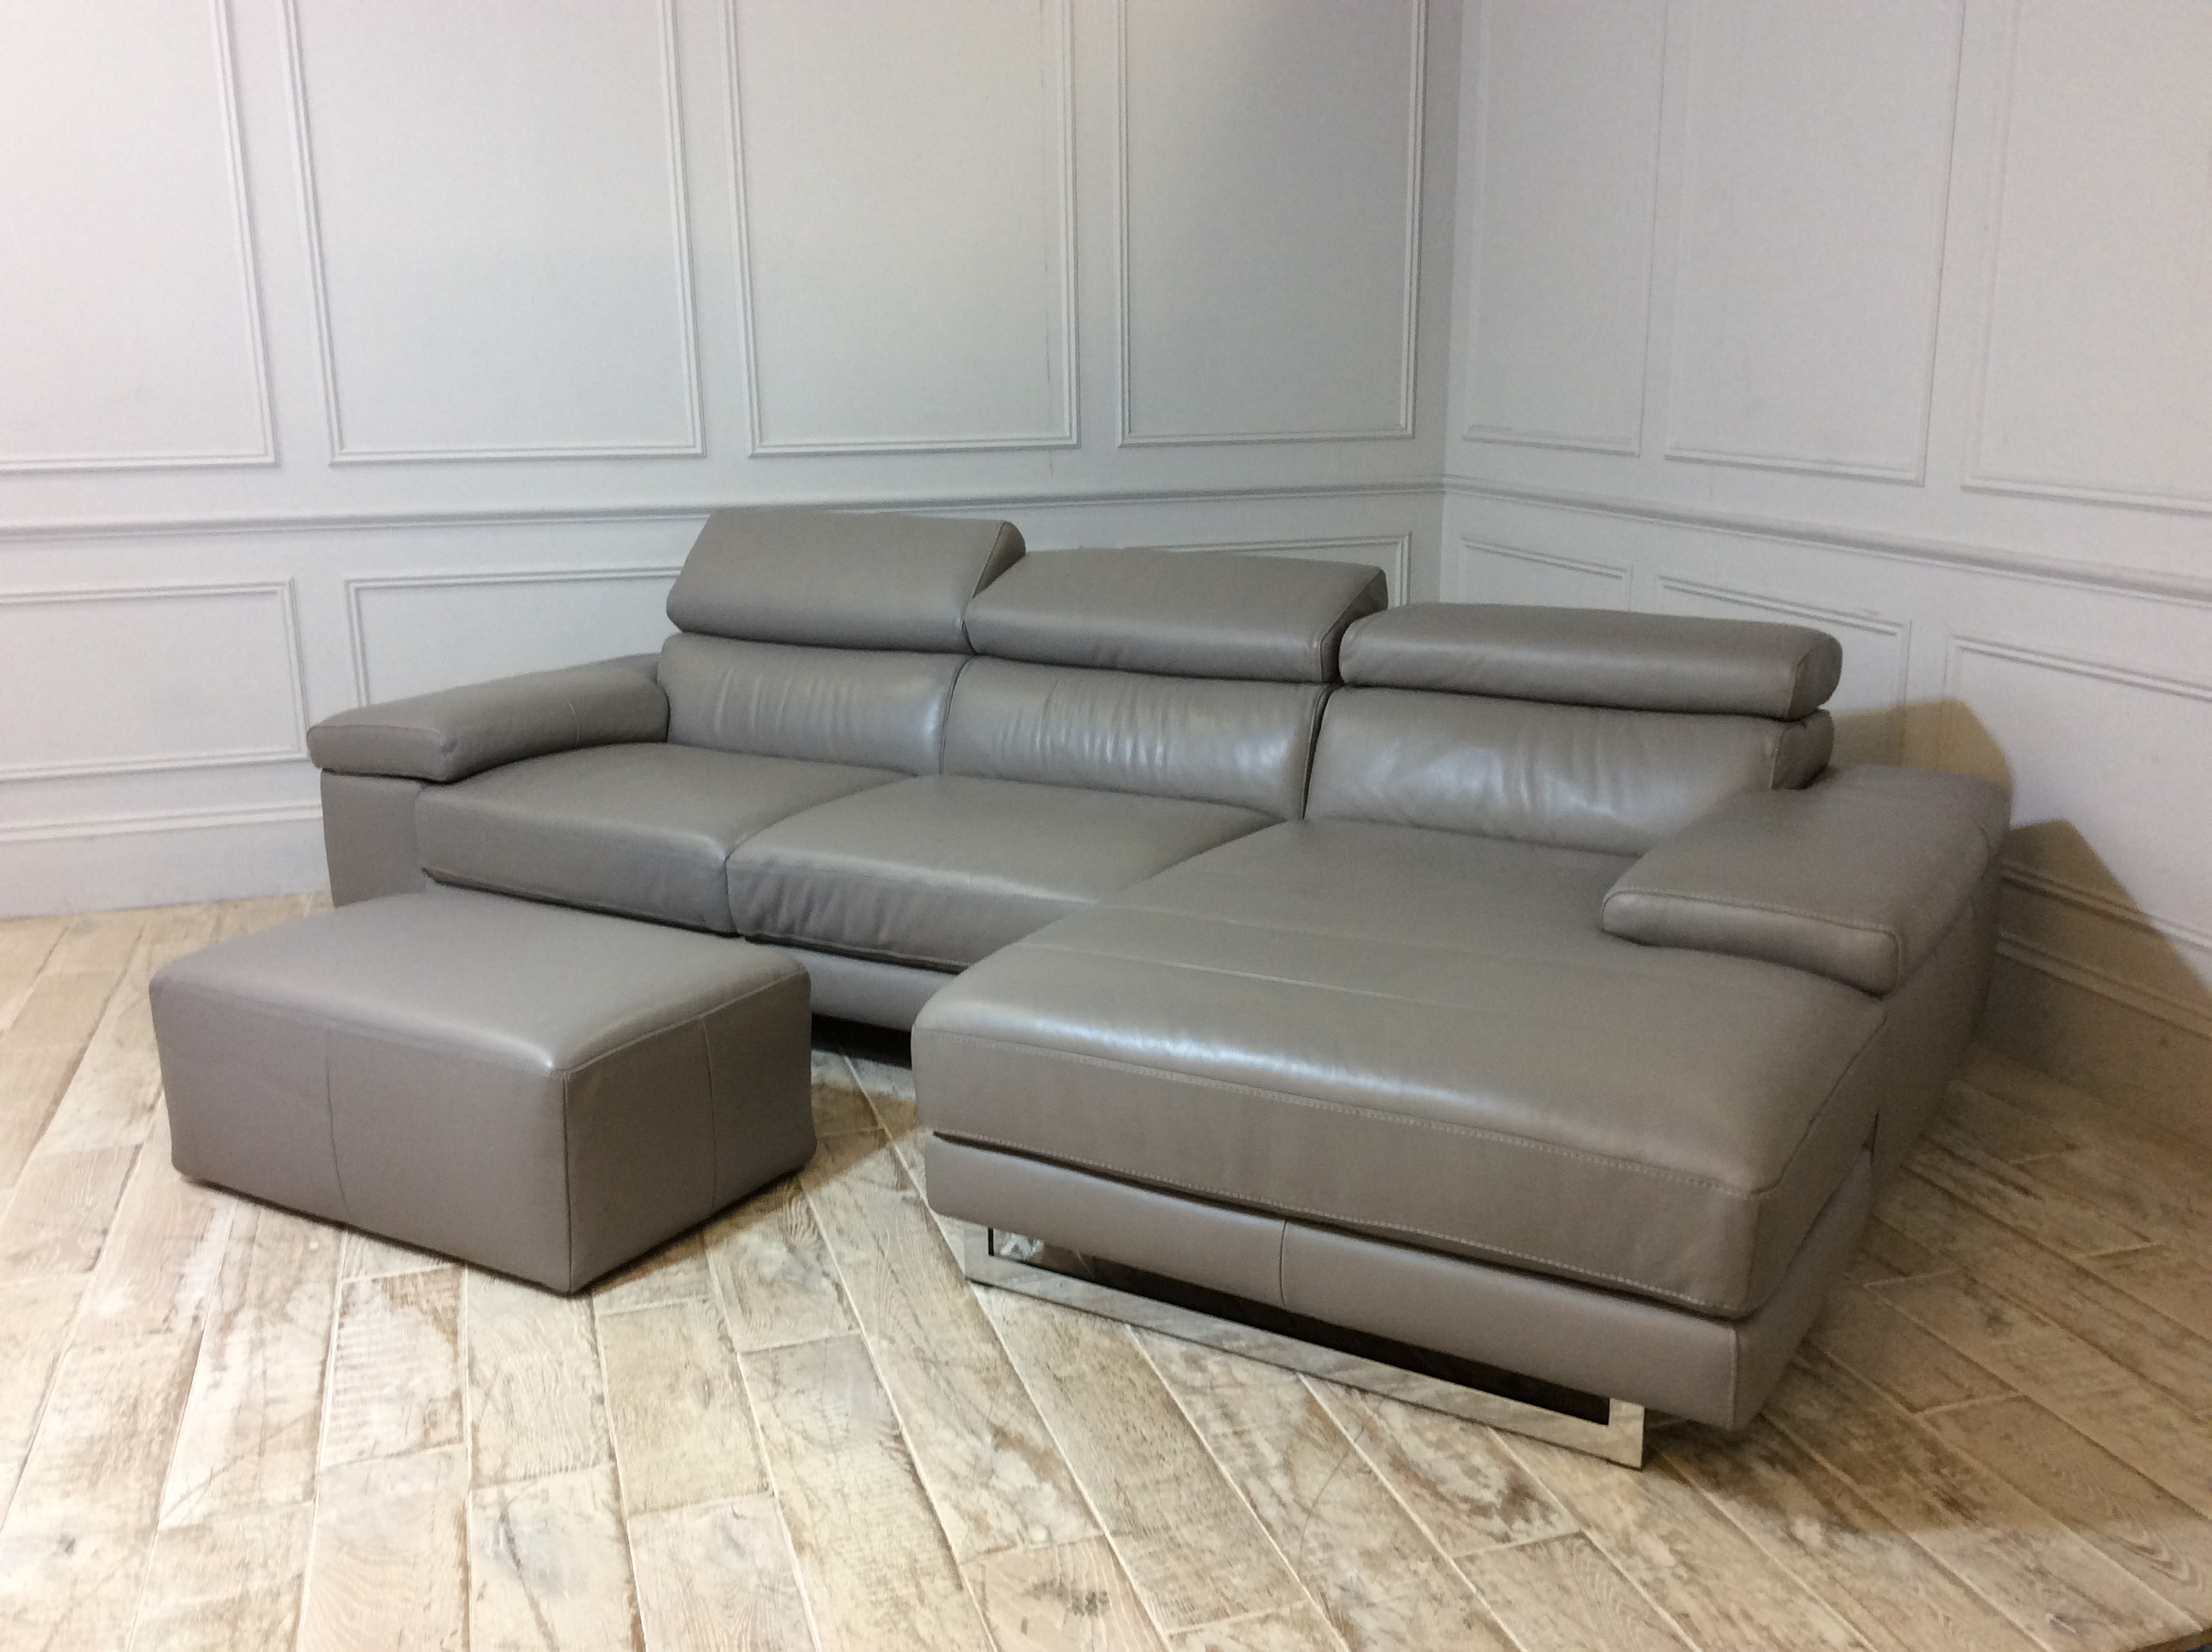 Milano Leather Chaise Sofa with Footstool in 20JG